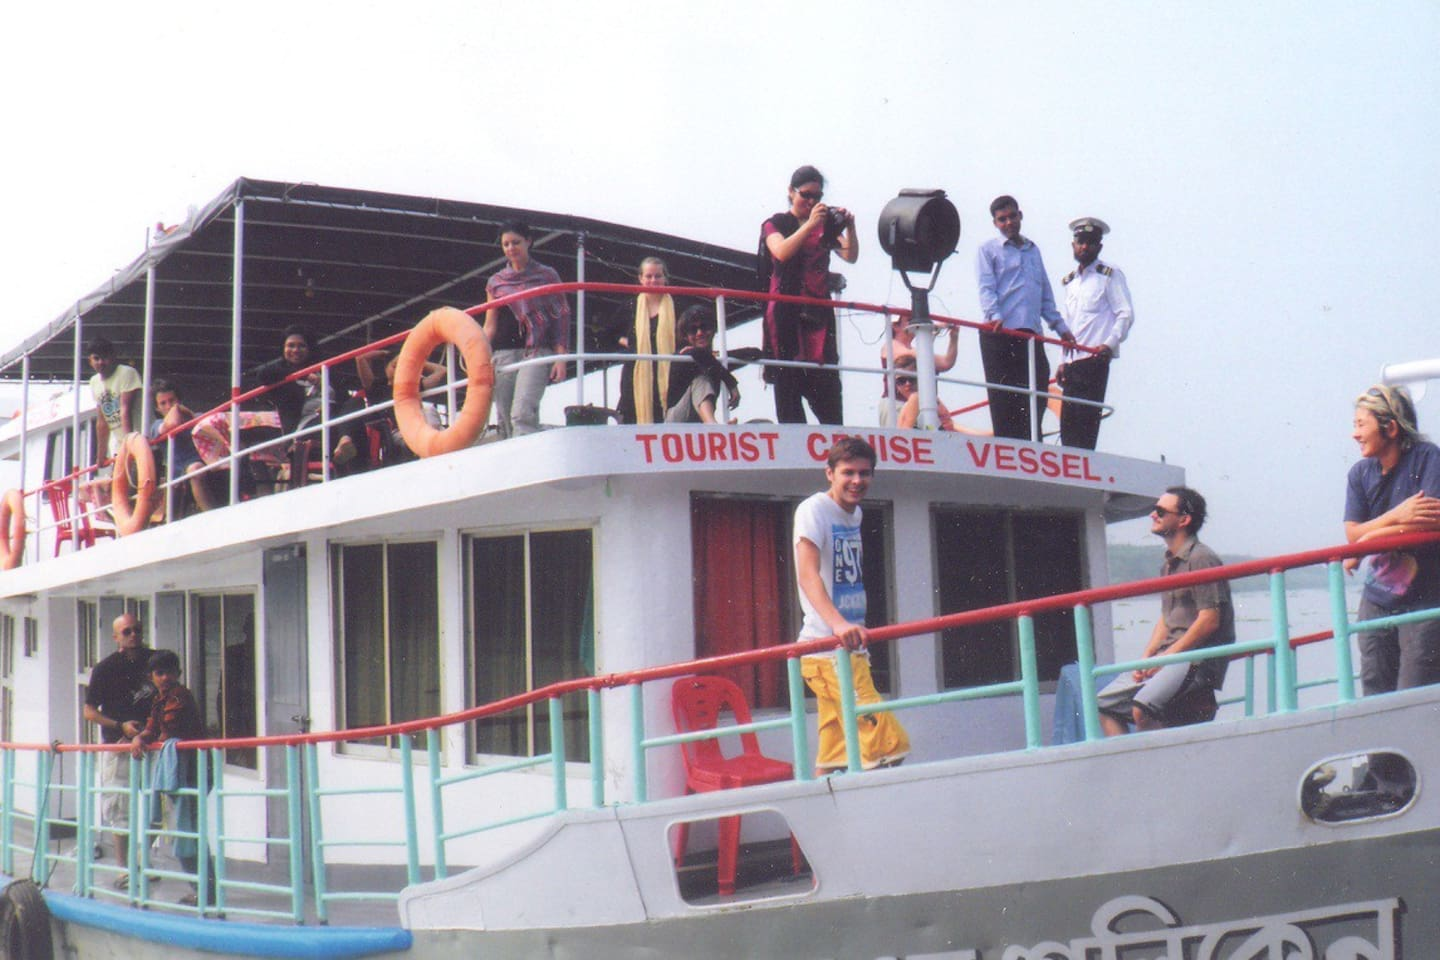 The cruise vessel